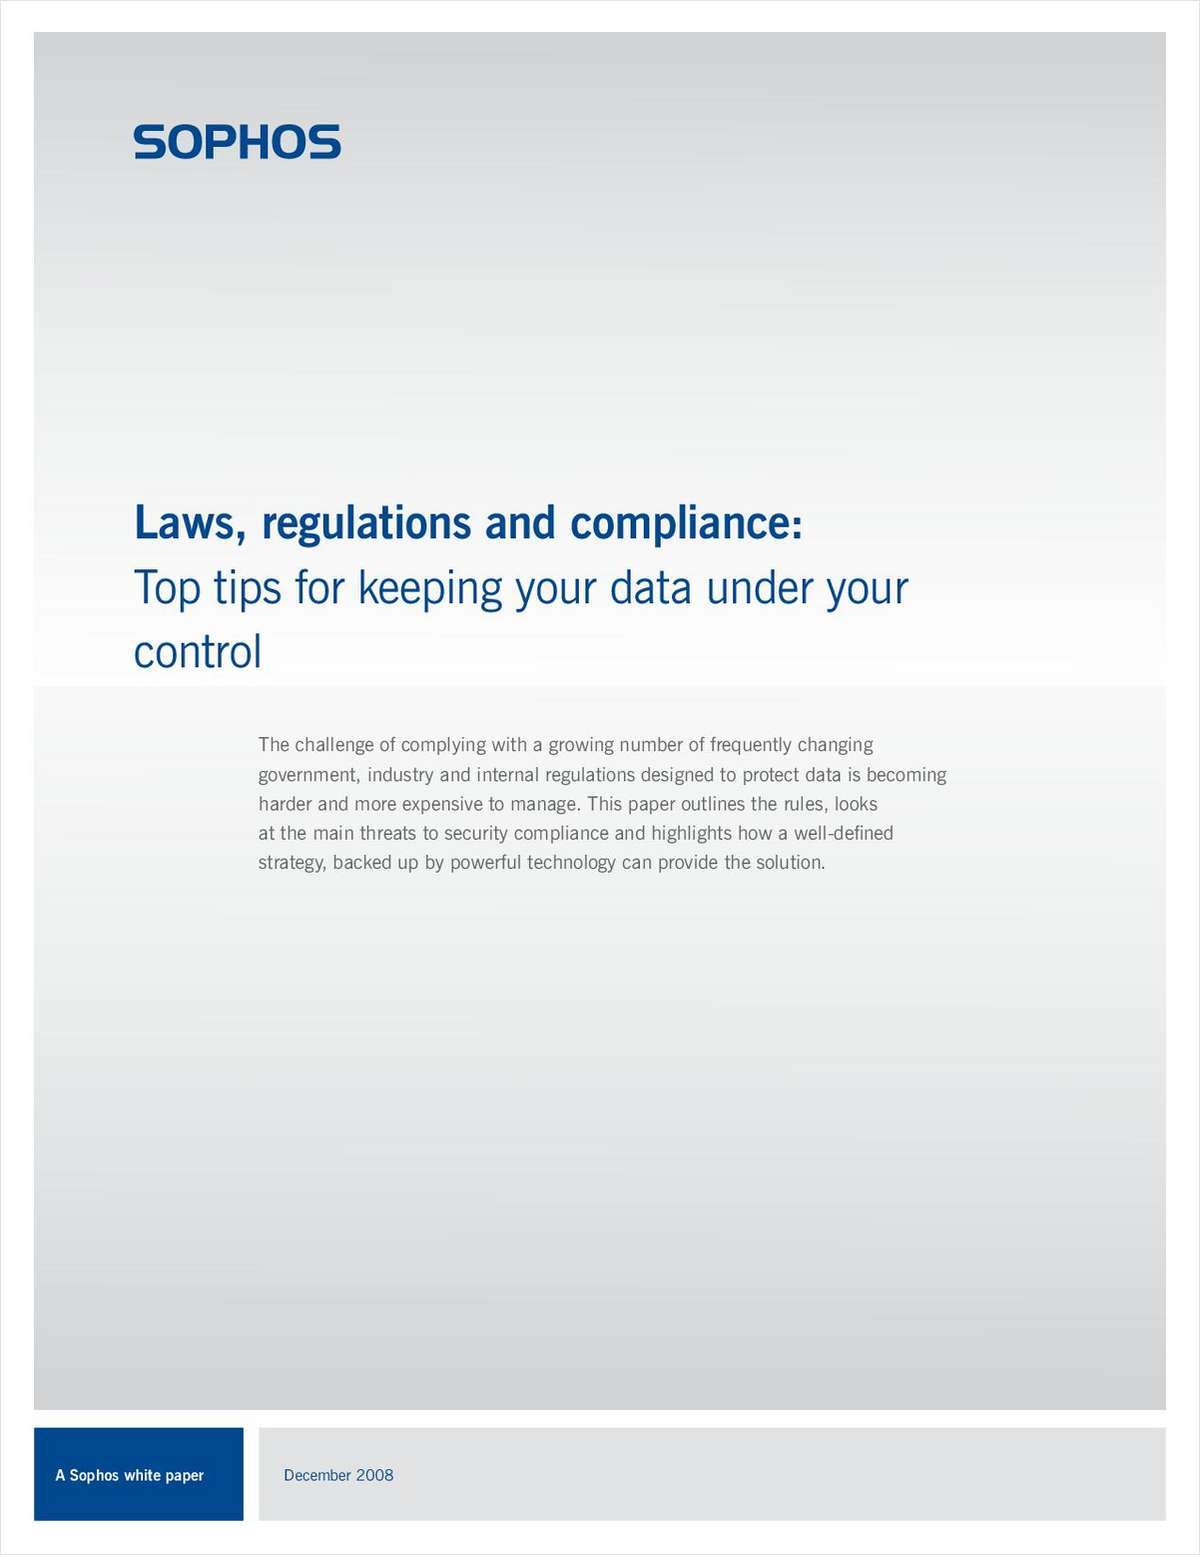 Laws, Regulations and Compliance: Top Tips for Keeping your Data Under your Control